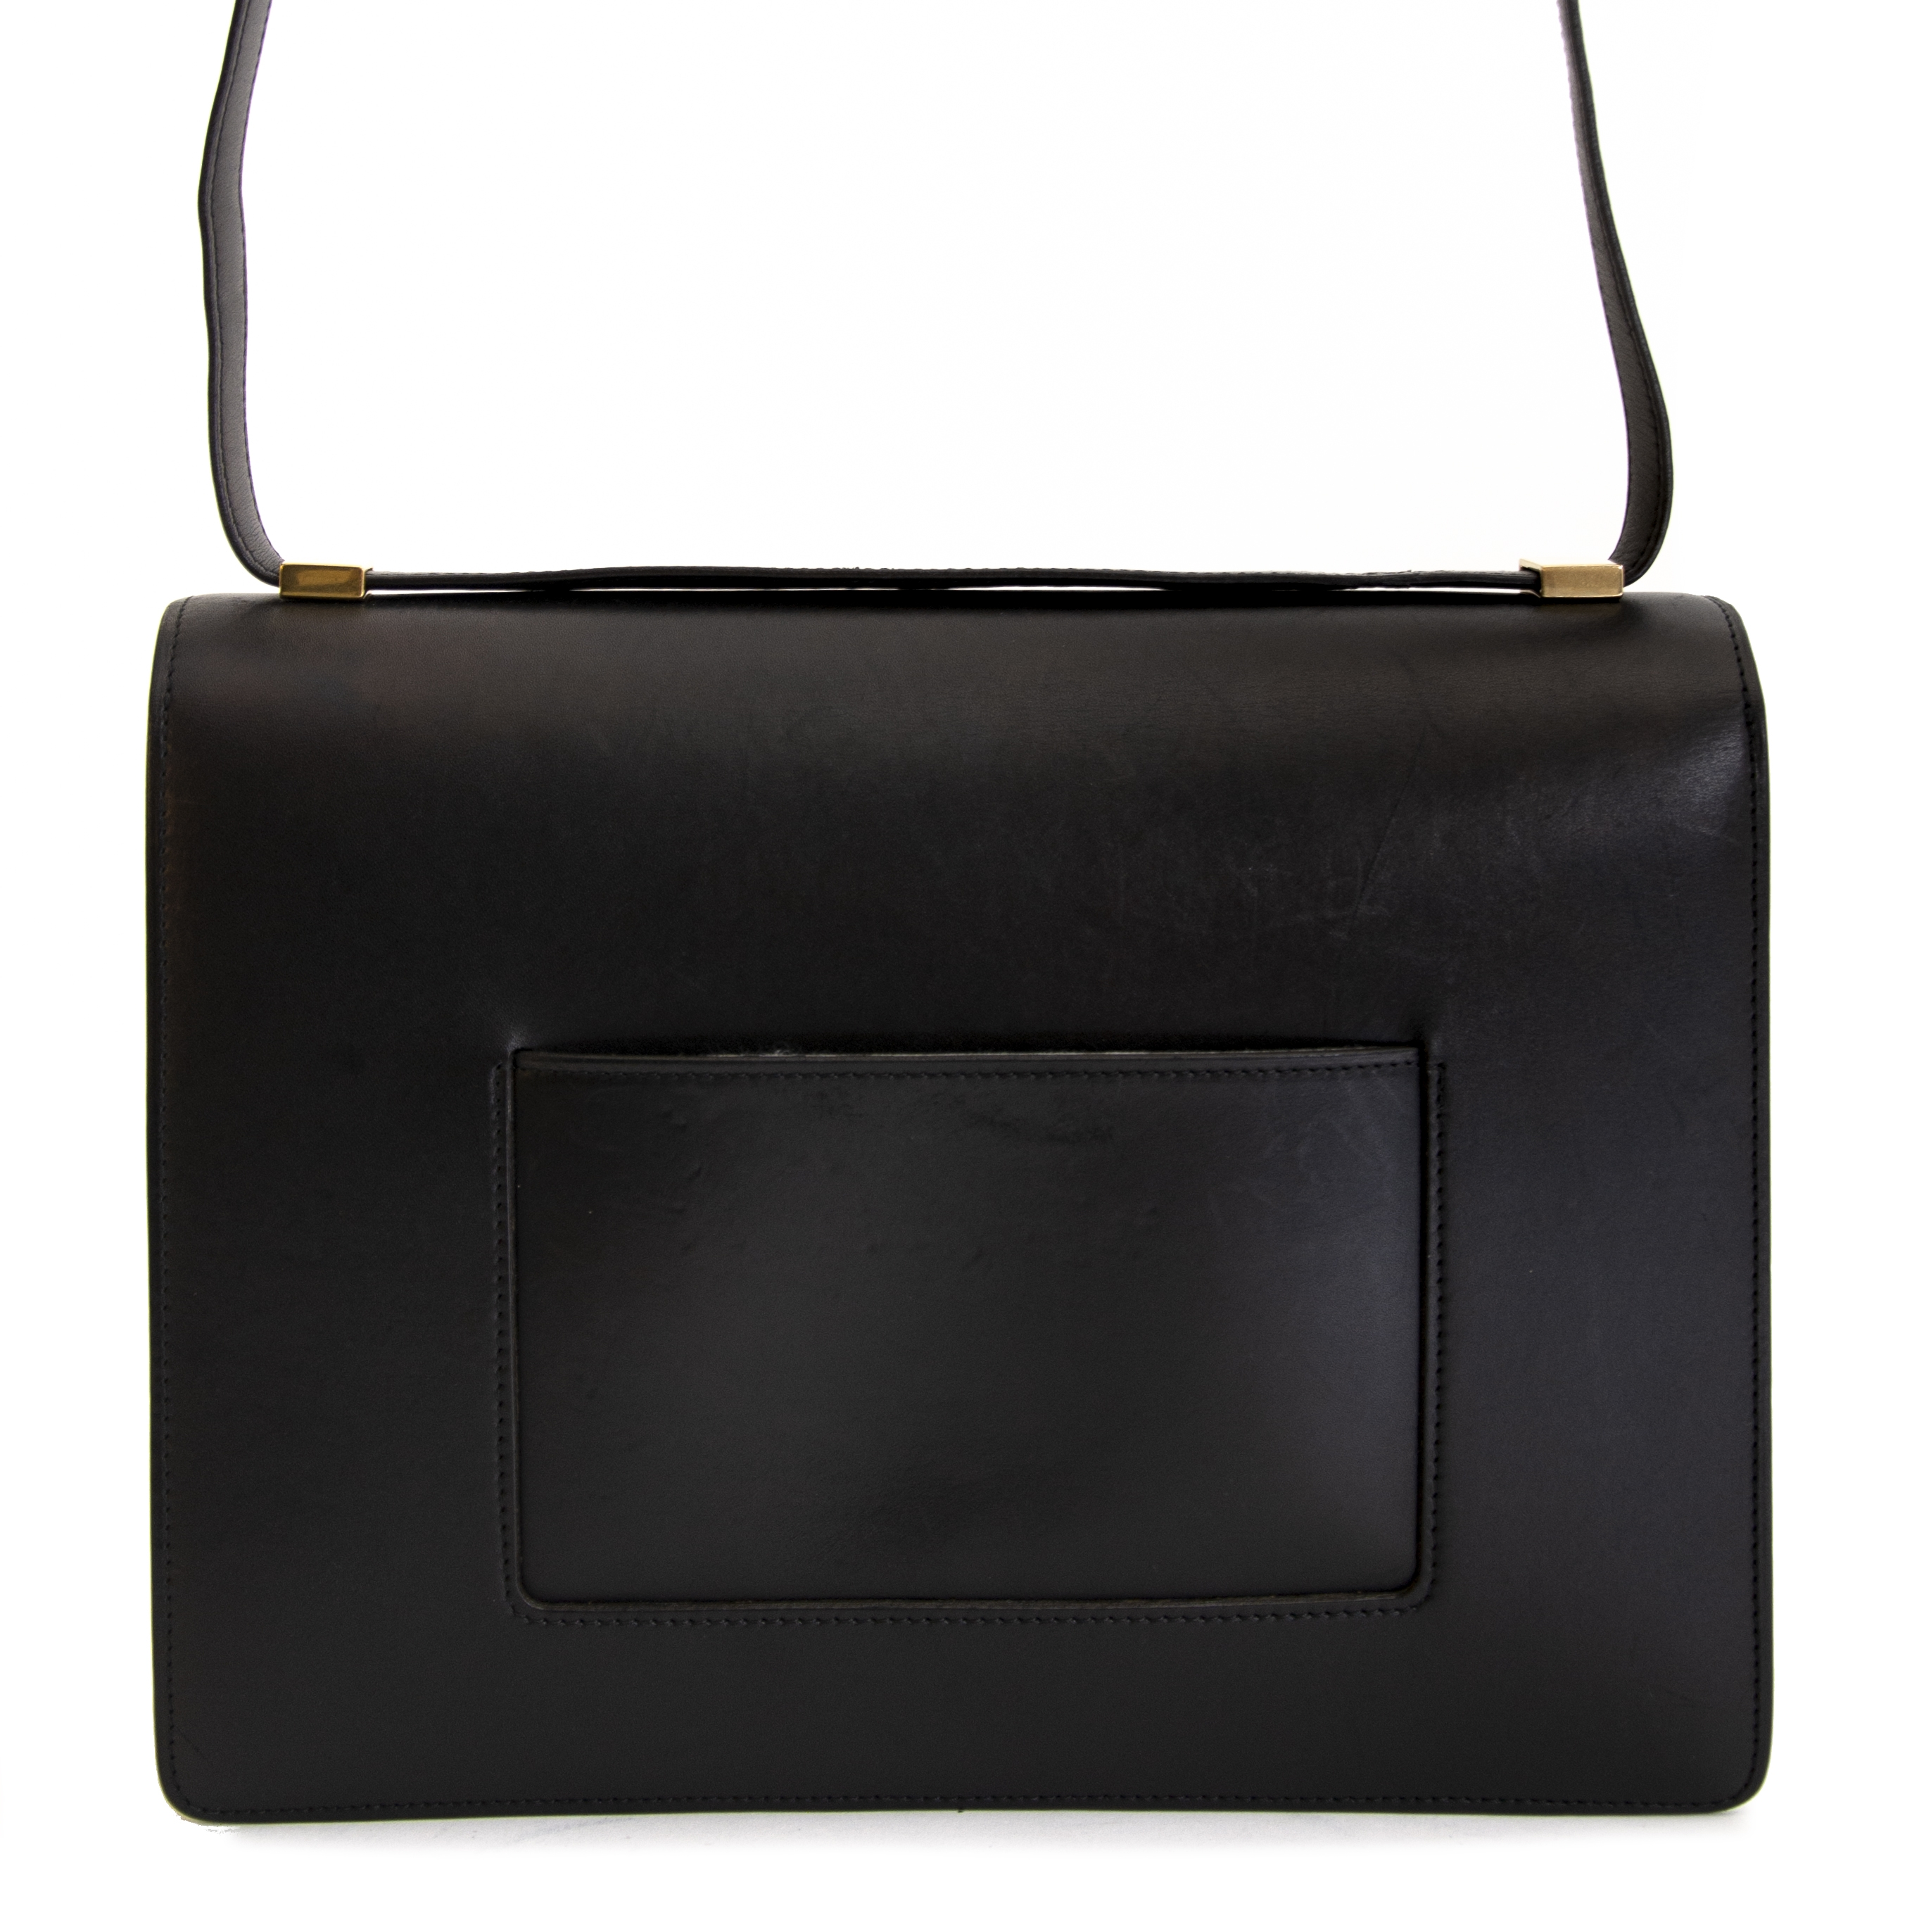 Buy authentic second hand vintage Céline Classic Box Handbag Duotone at online webshop LabelLOV